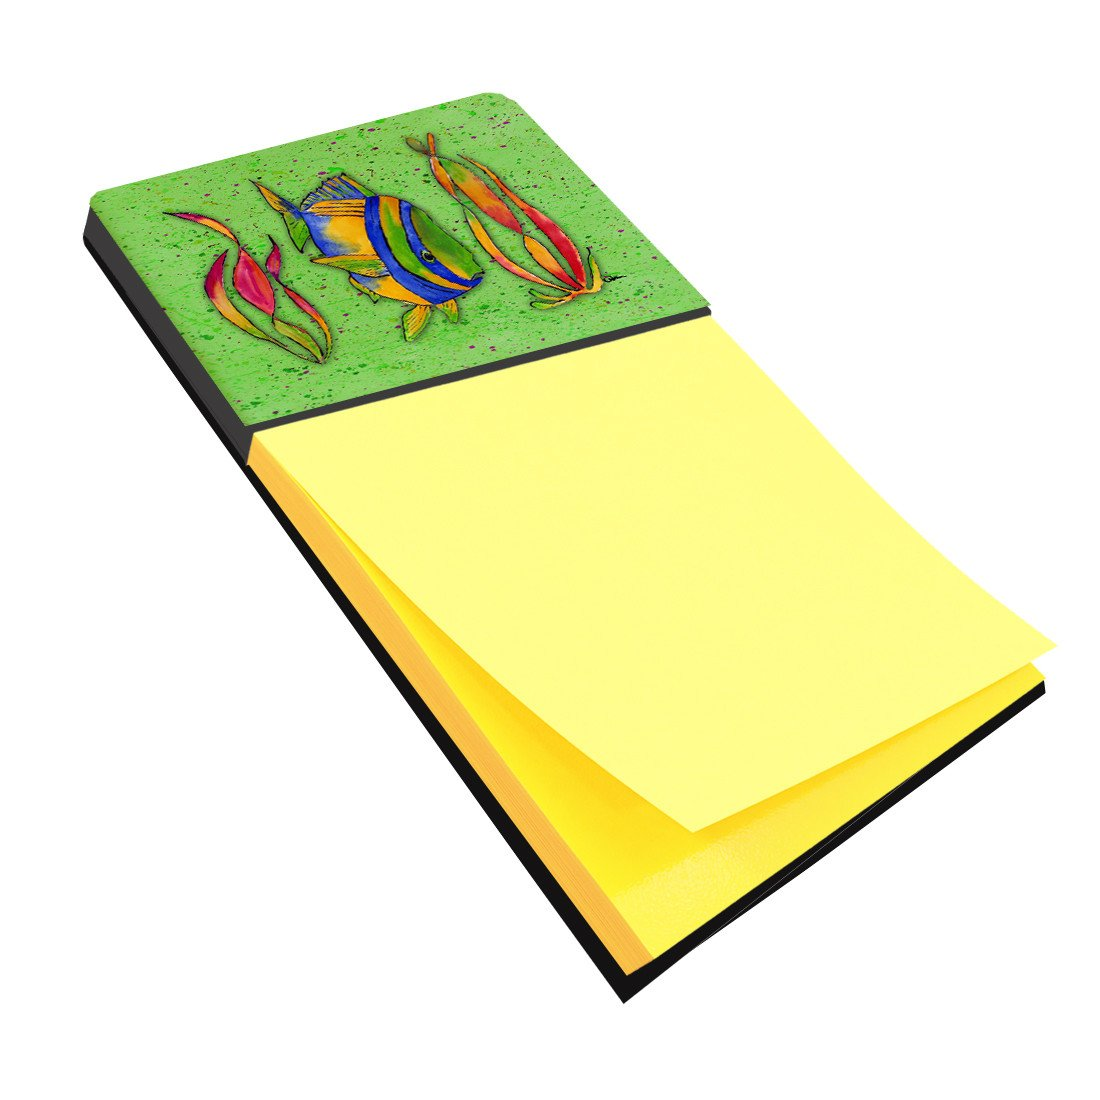 Tropical Fish on Green Refiillable Sticky Note Holder or Postit Note Dispenser 8568SN by Caroline's Treasures